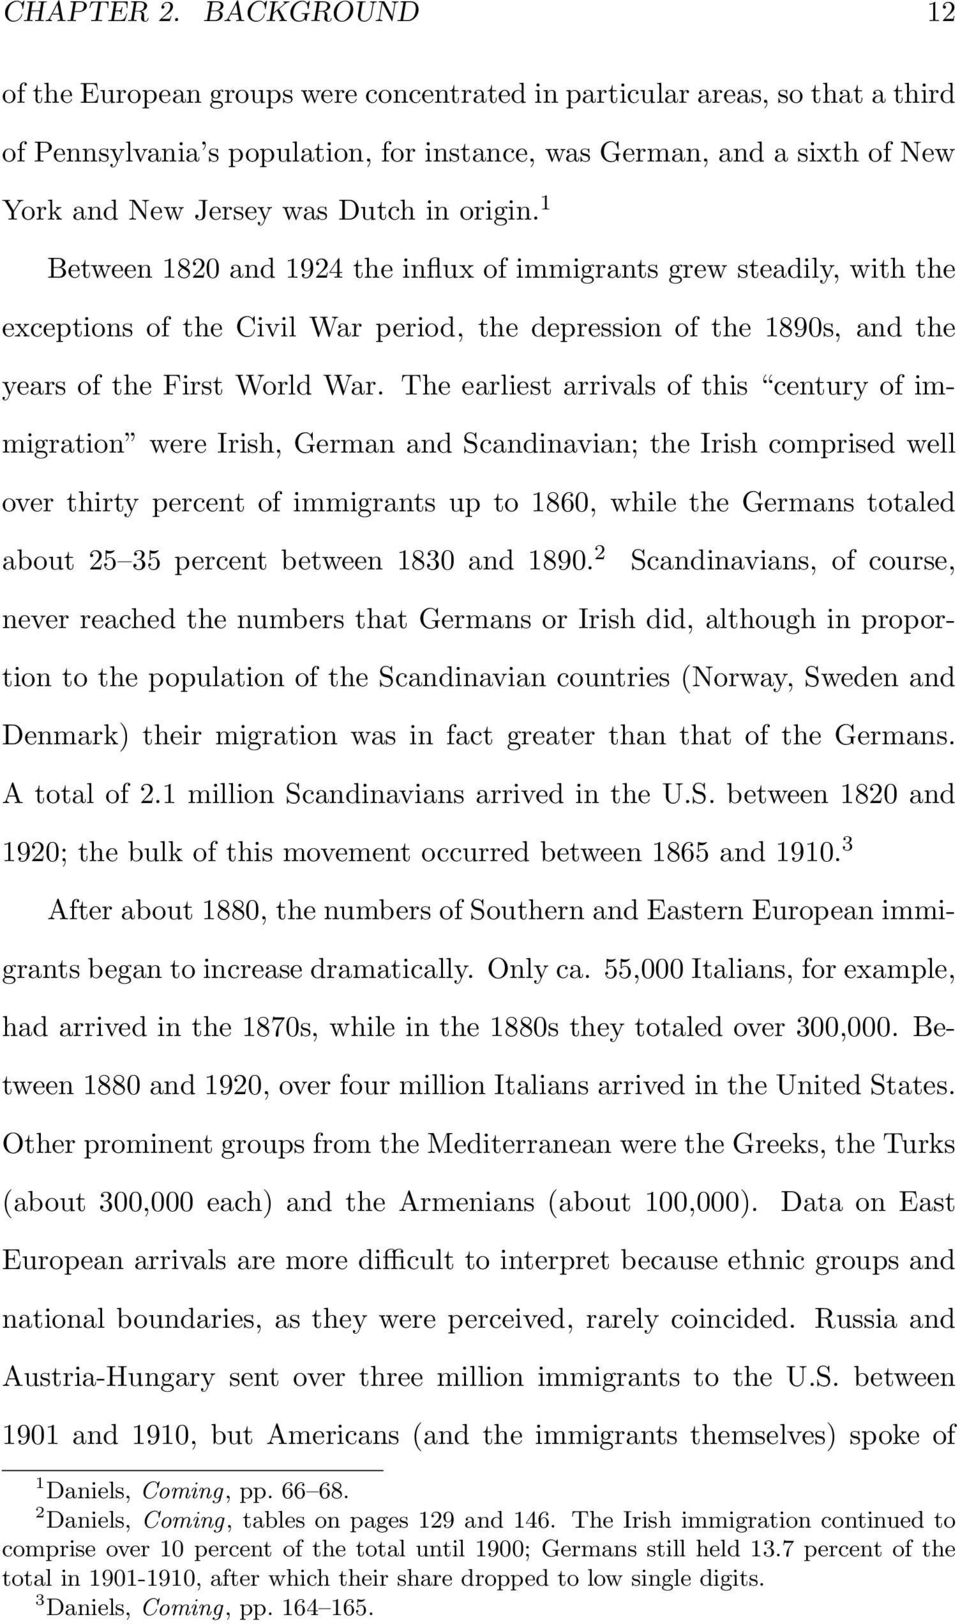 origin. 1 Between 1820 and 1924 the influx of immigrants grew steadily, with the exceptions of the Civil War period, the depression of the 1890s, and the years of the First World War.